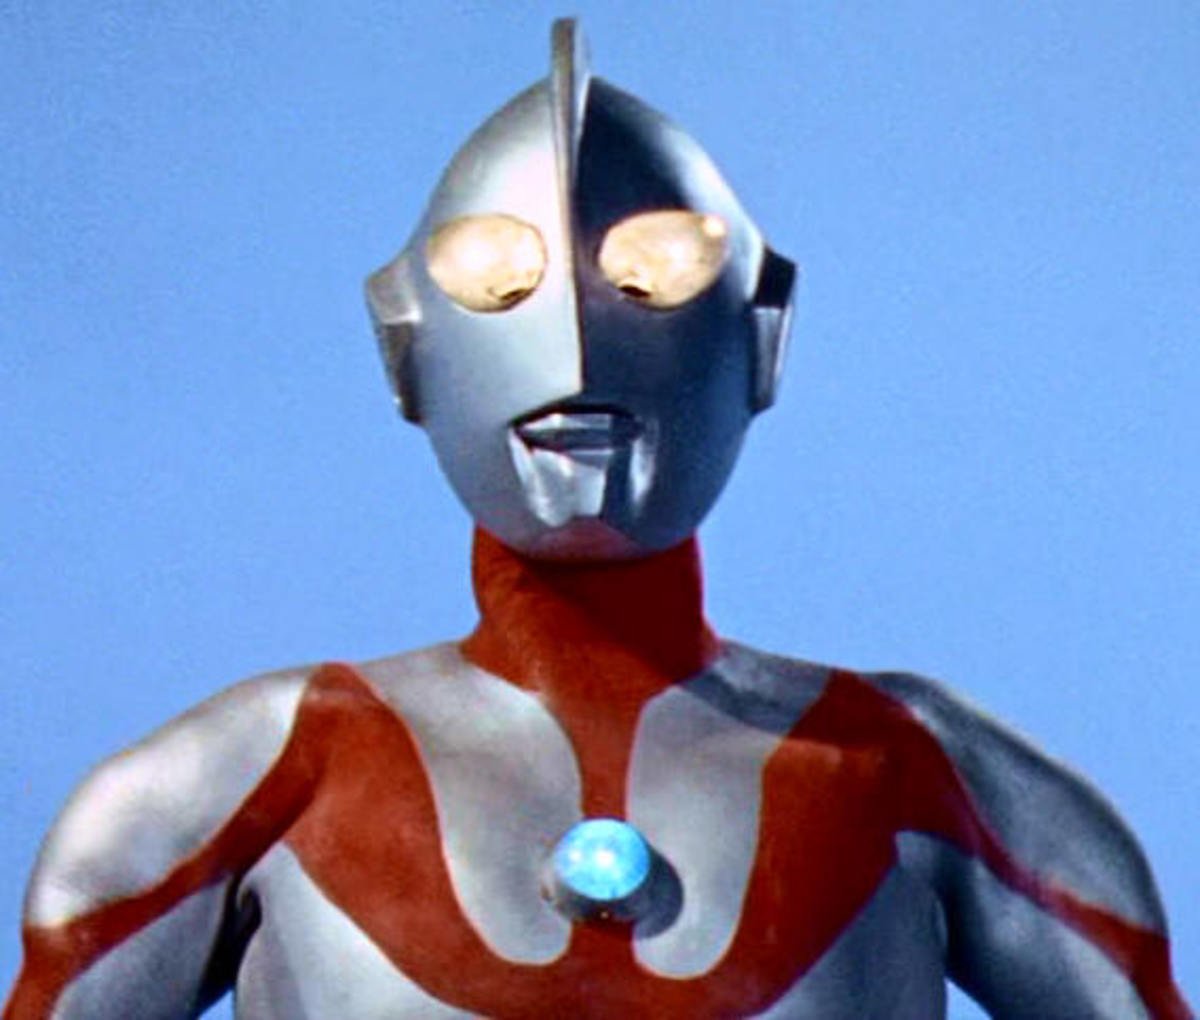 An Overview of Ultraman